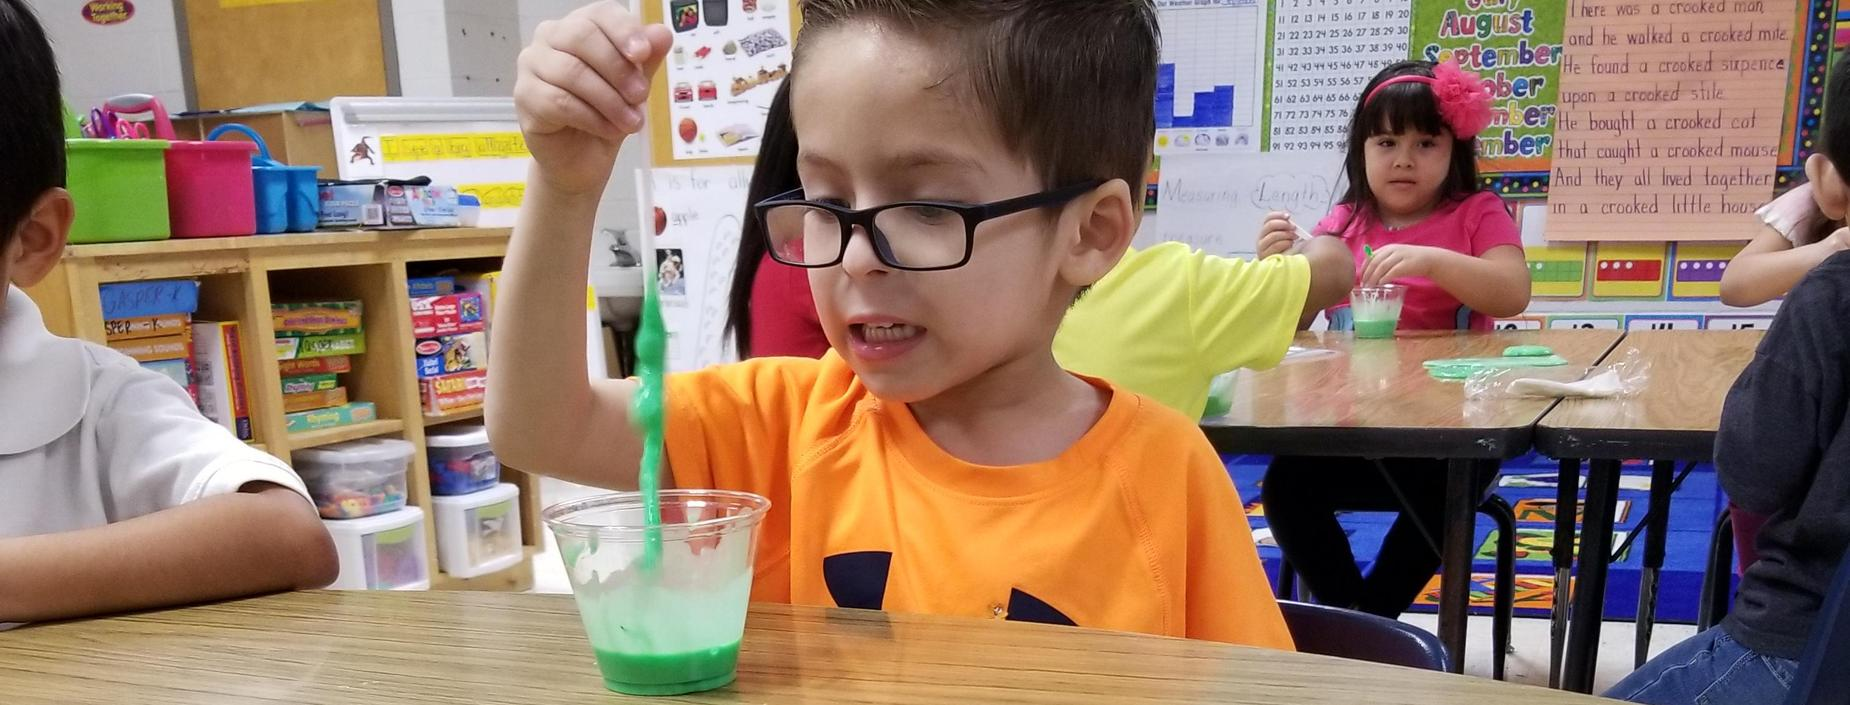 A kindergarten students plays with his green slime creation.